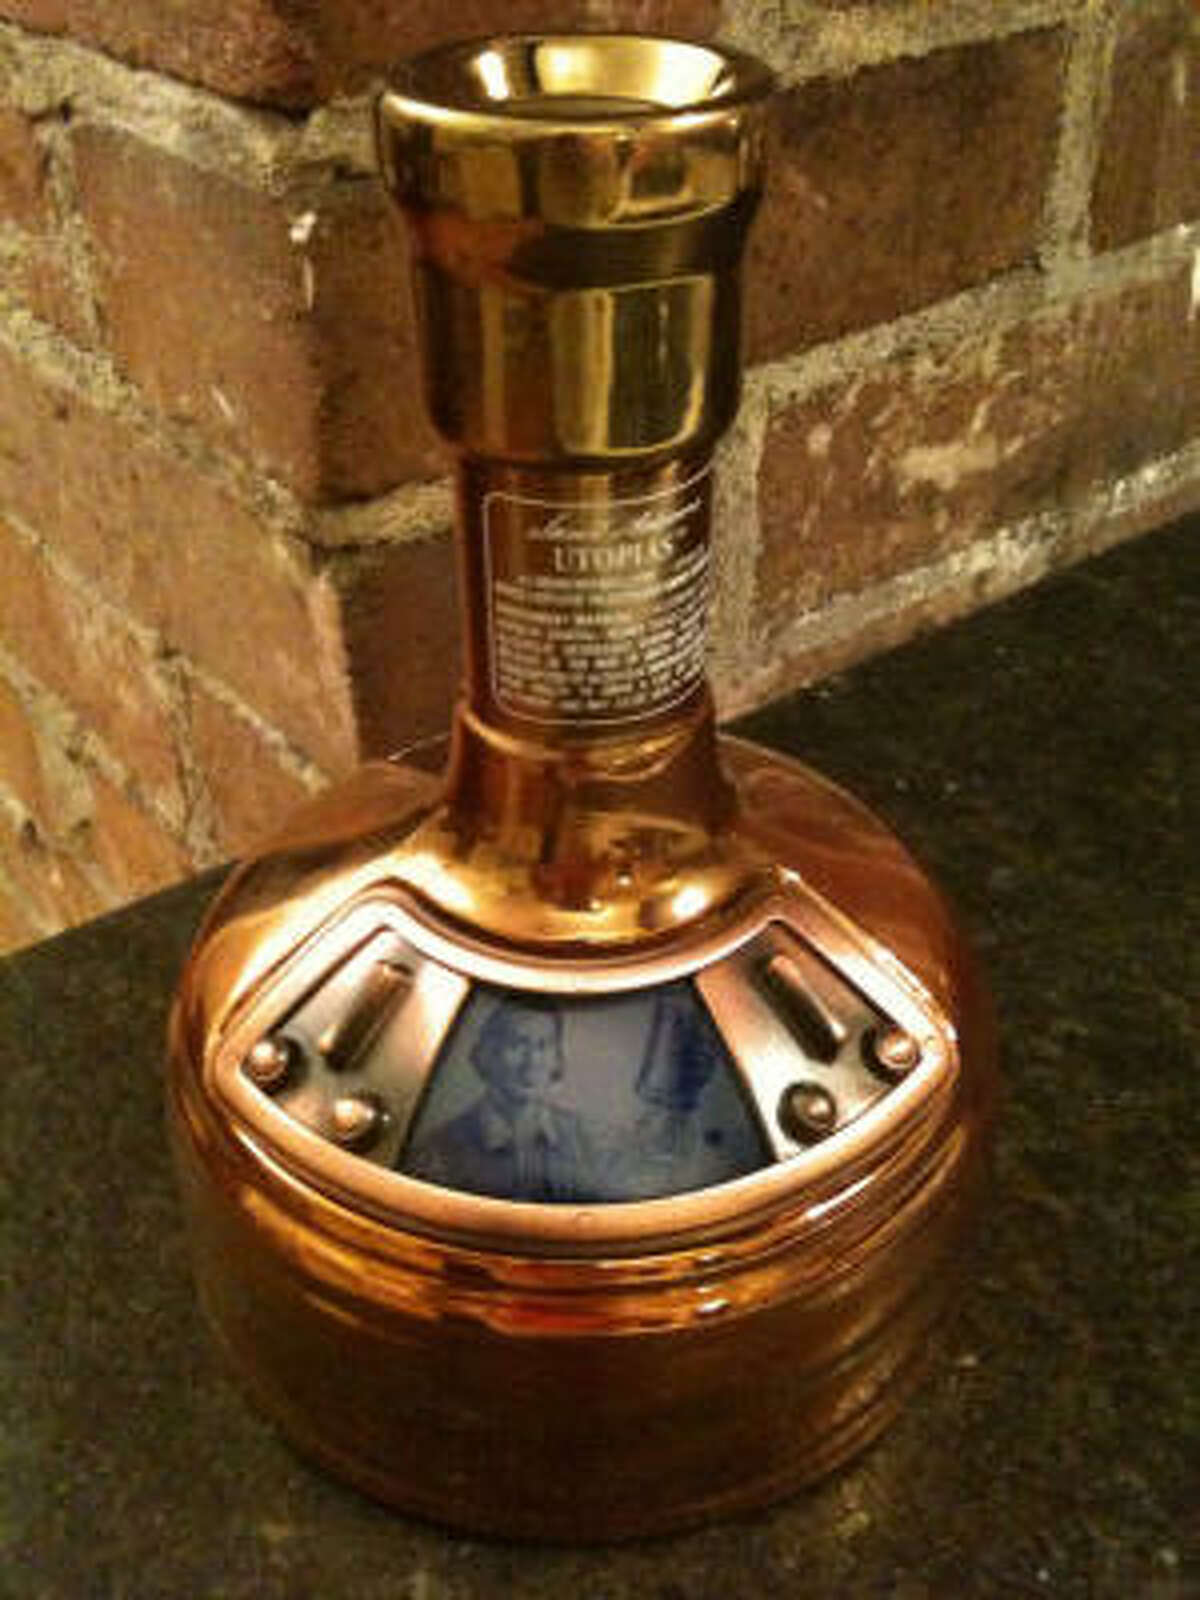 At 27 percent alcohol by volume, the 2009 Utopias from Samuel Adams is the strongest beer around.